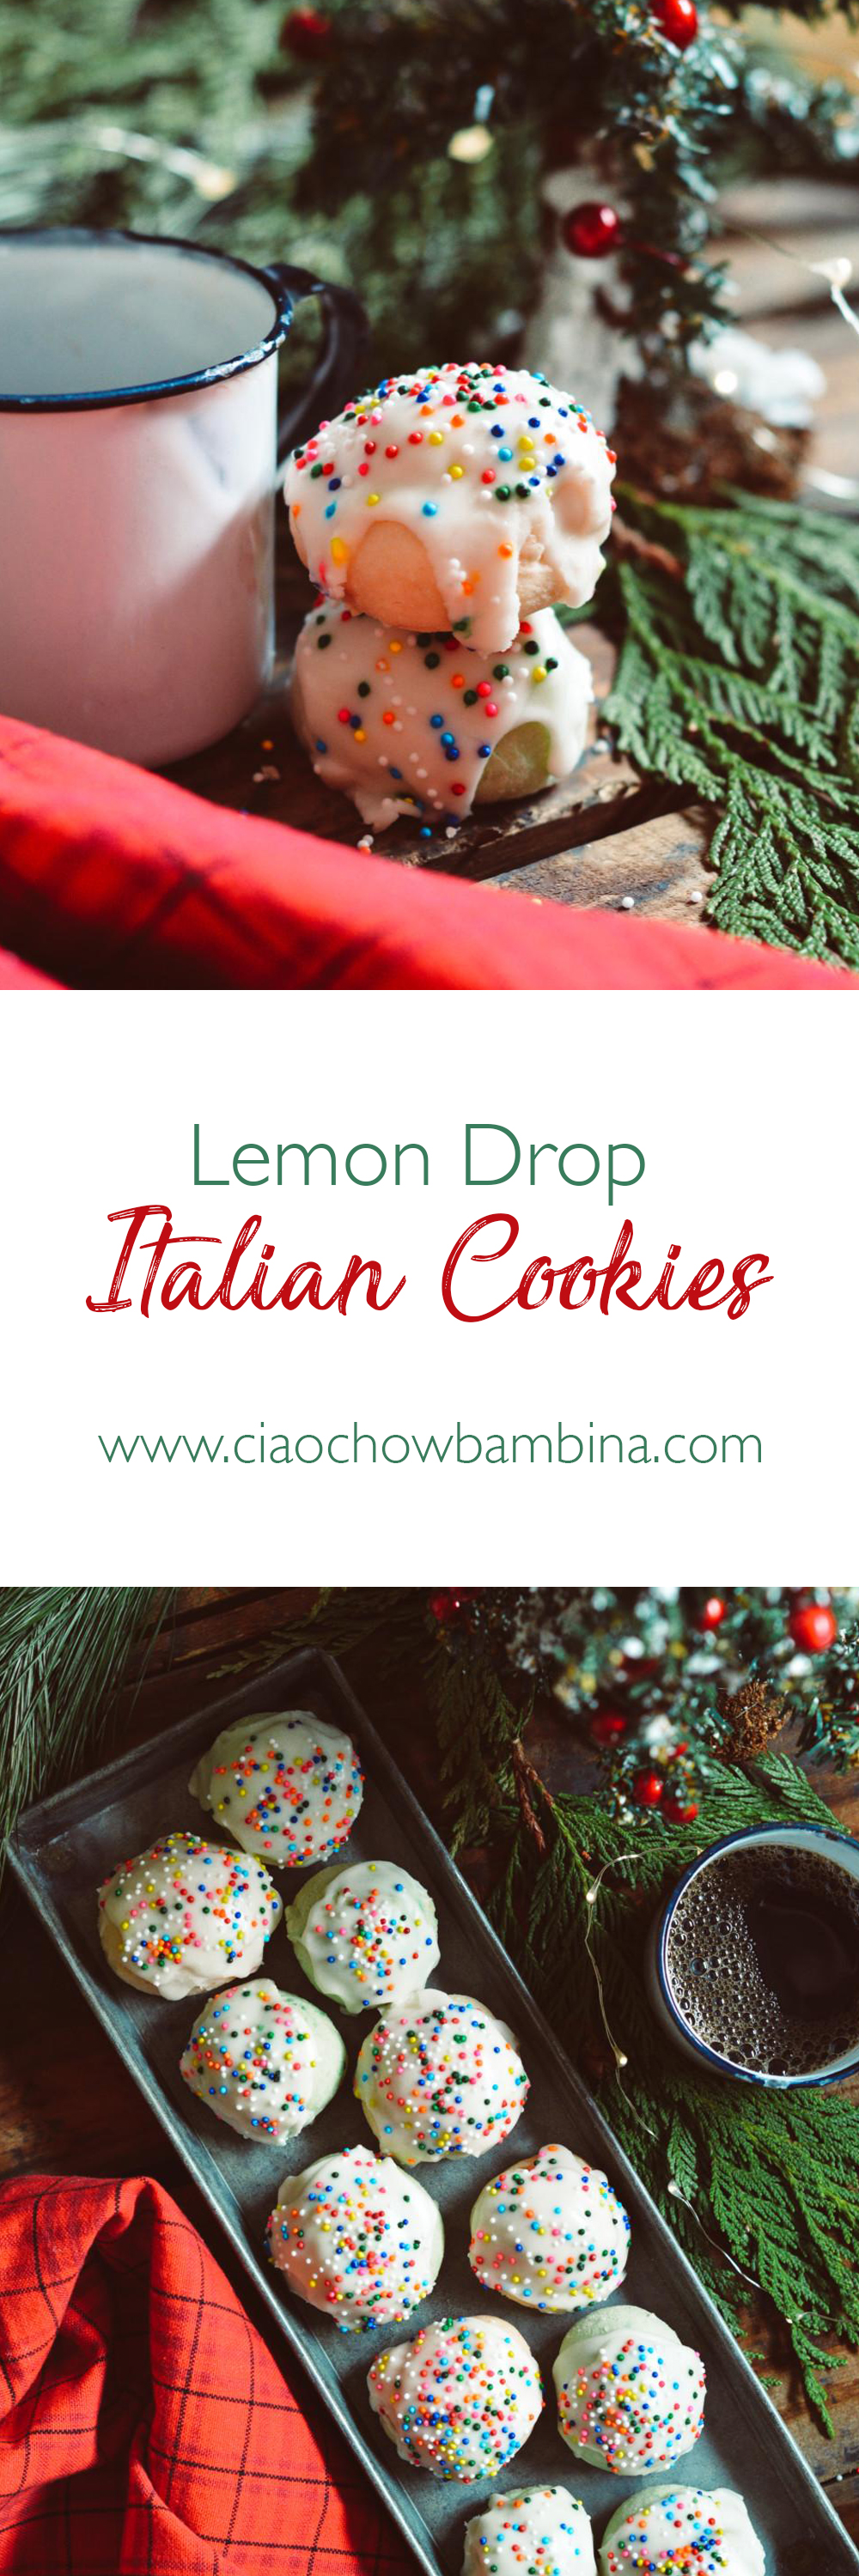 Lemon Drop Italian Cookies